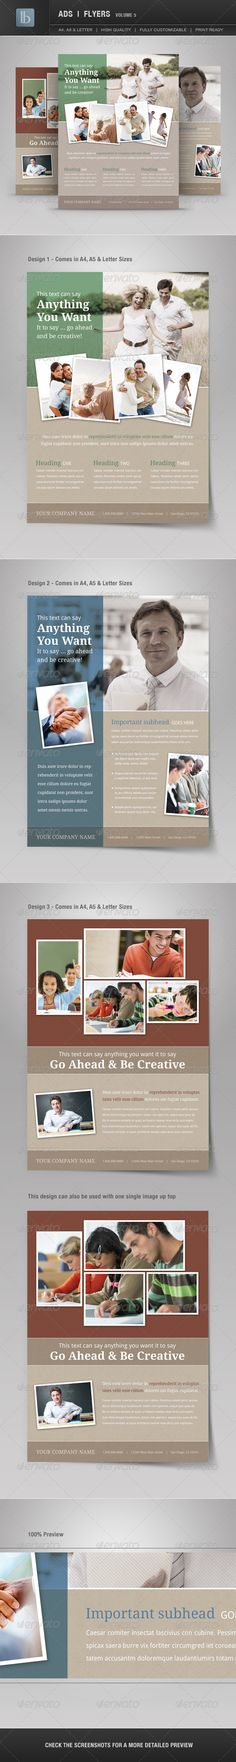 Ads | Business Flyers | Volume 5 - GraphicRiver Item for Sale